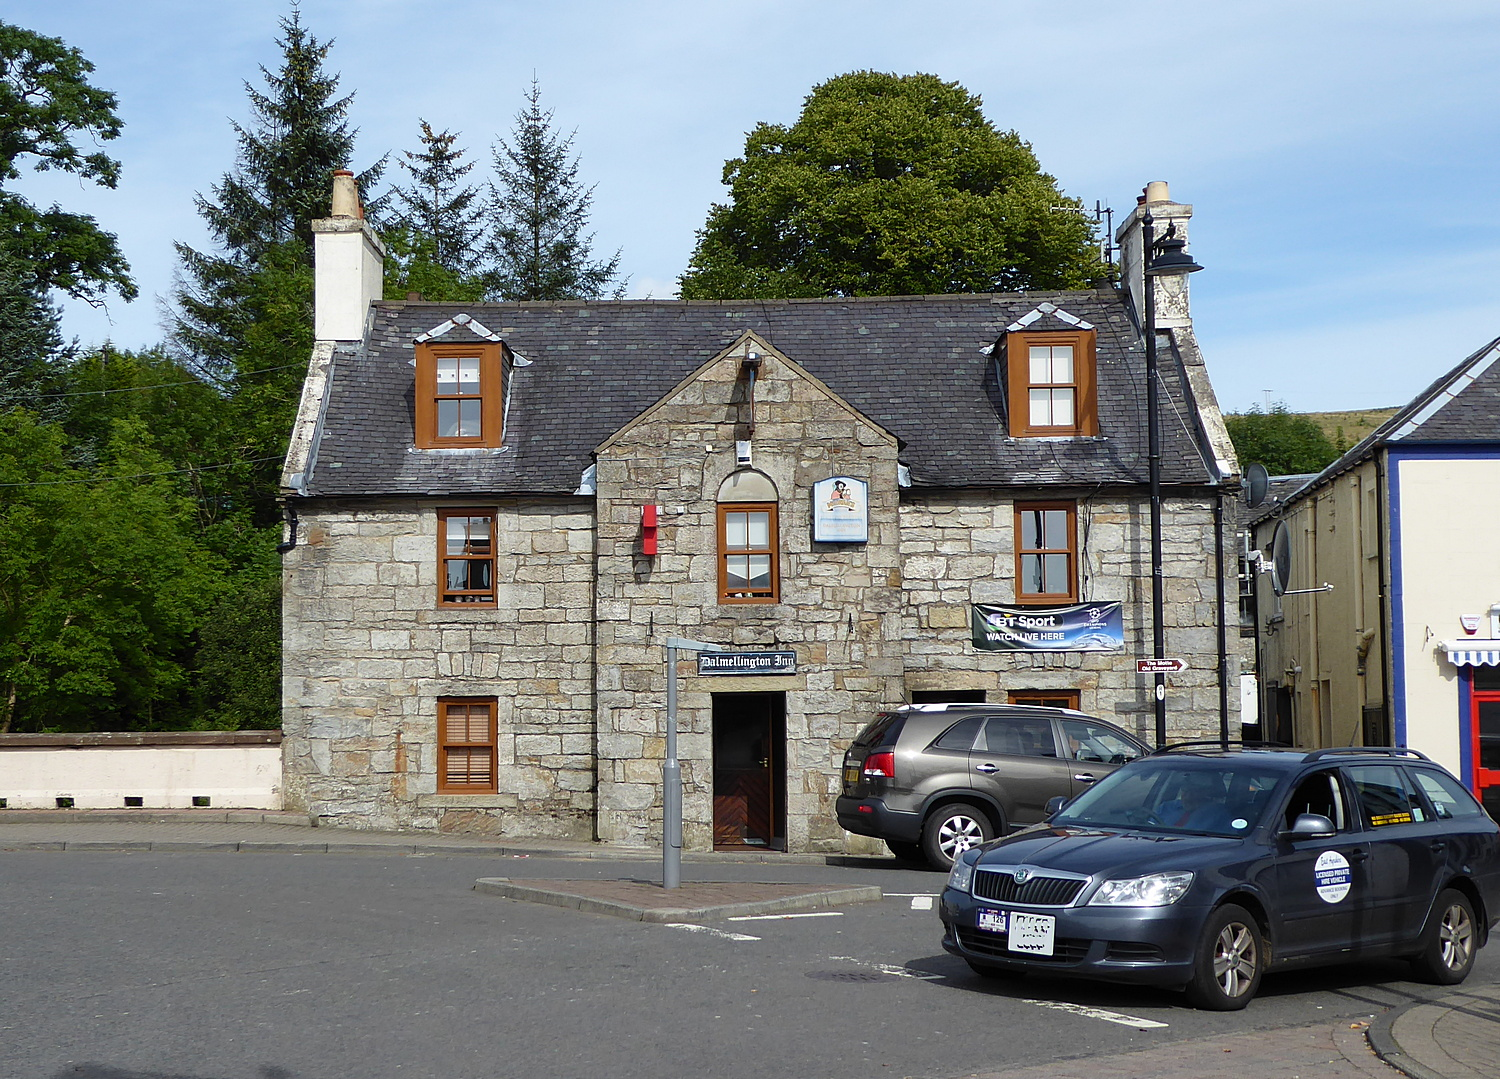 Dalmellington Inn